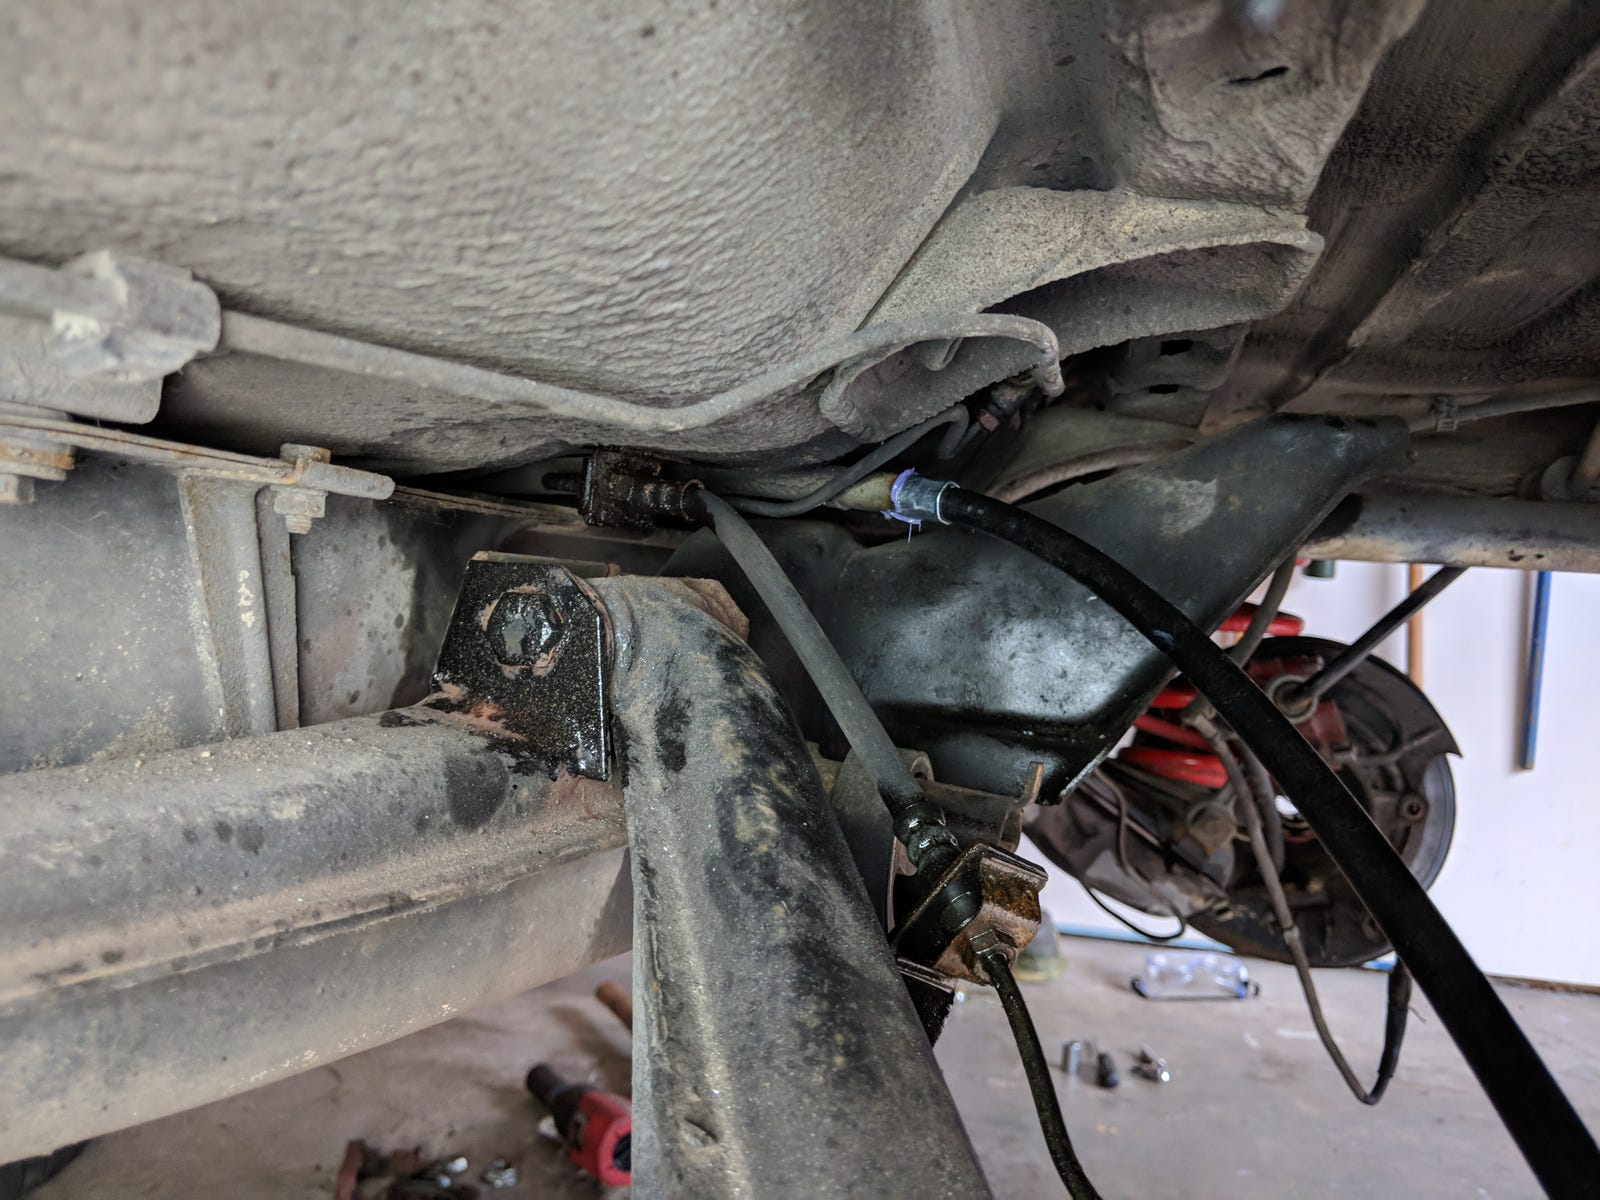 The rubber brake hose (center) is looking worse for wear. The new parking brake cable (right) looks good though!